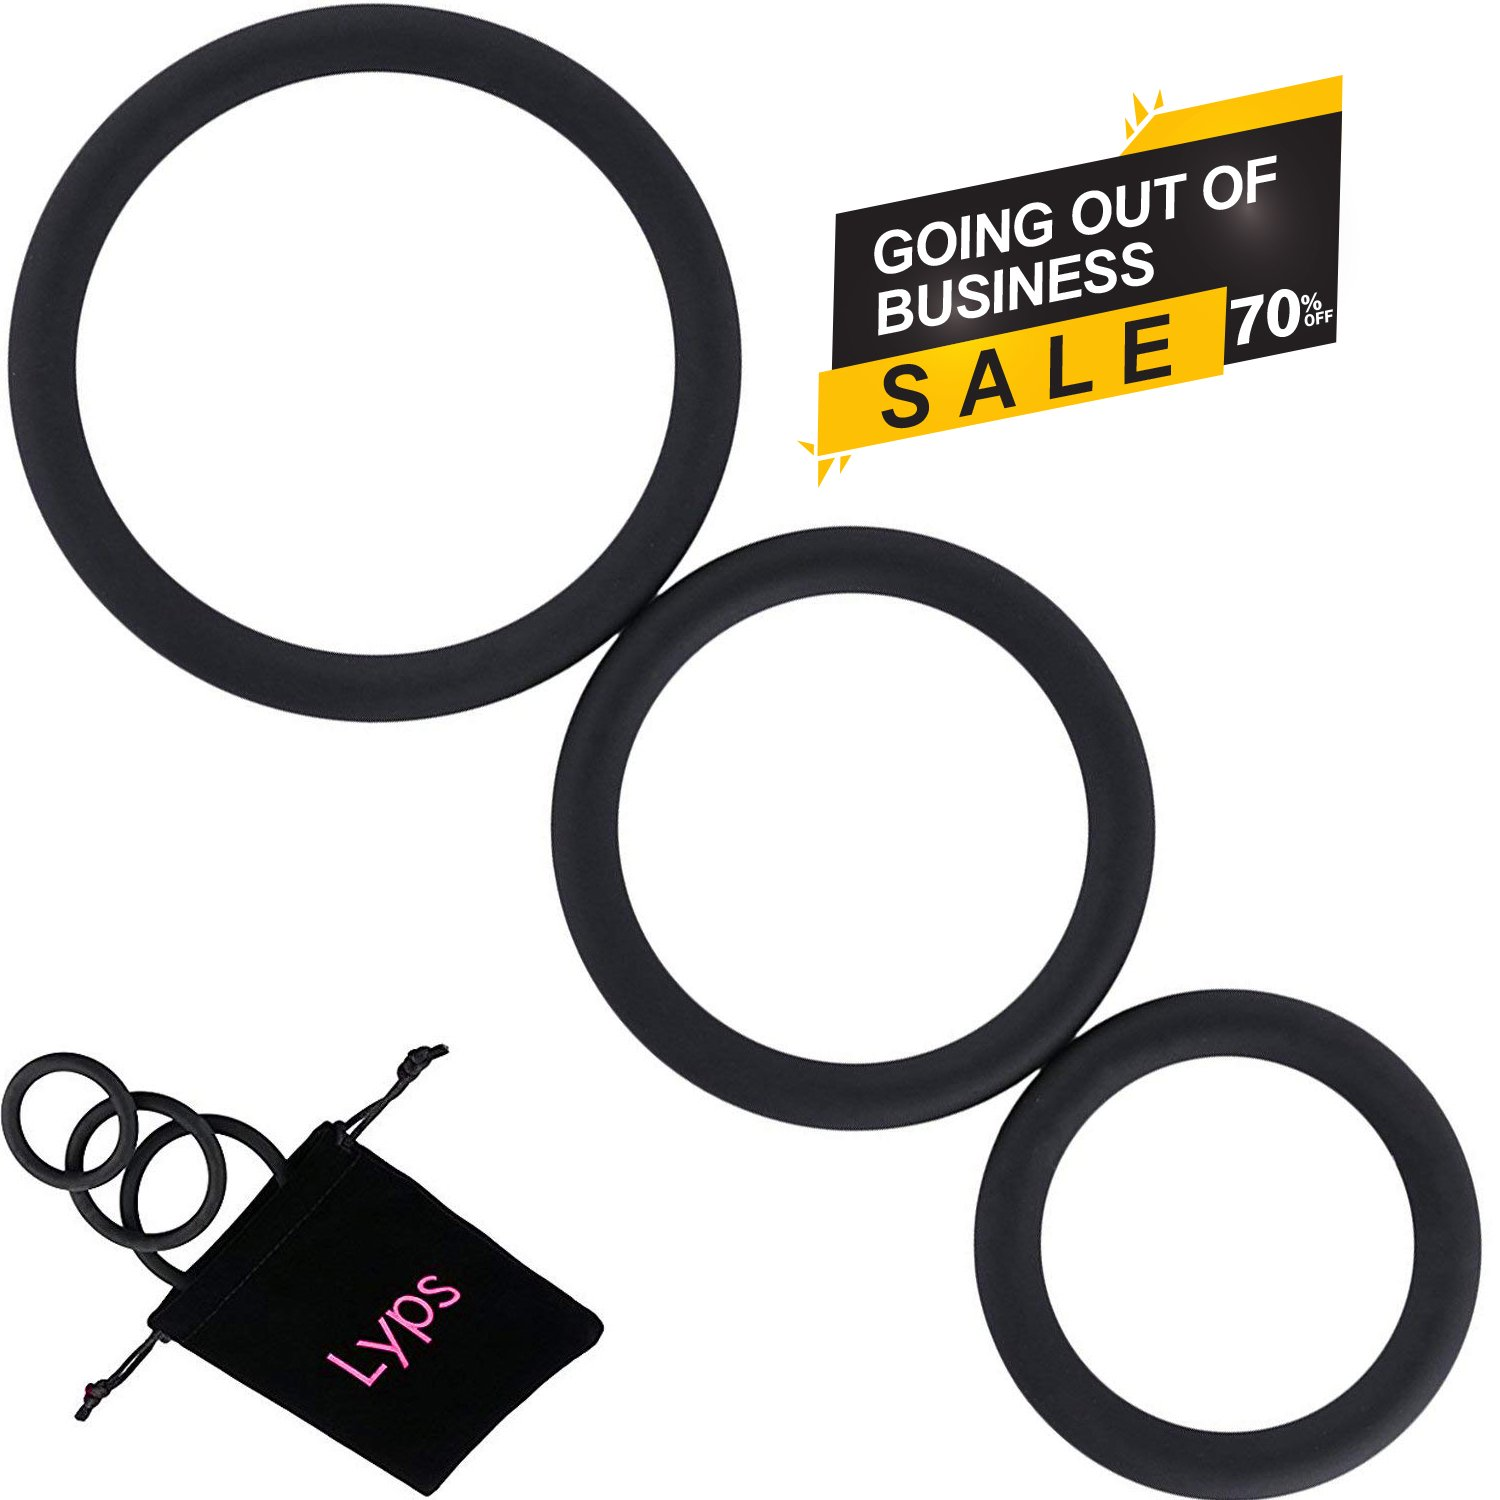 Amazon.com: Cock Ring Set by Lyps 3 sizes for Male Erection Enhancing Penis  Ring Seamless Rings Medical Grade Silicone: Health & Personal Care